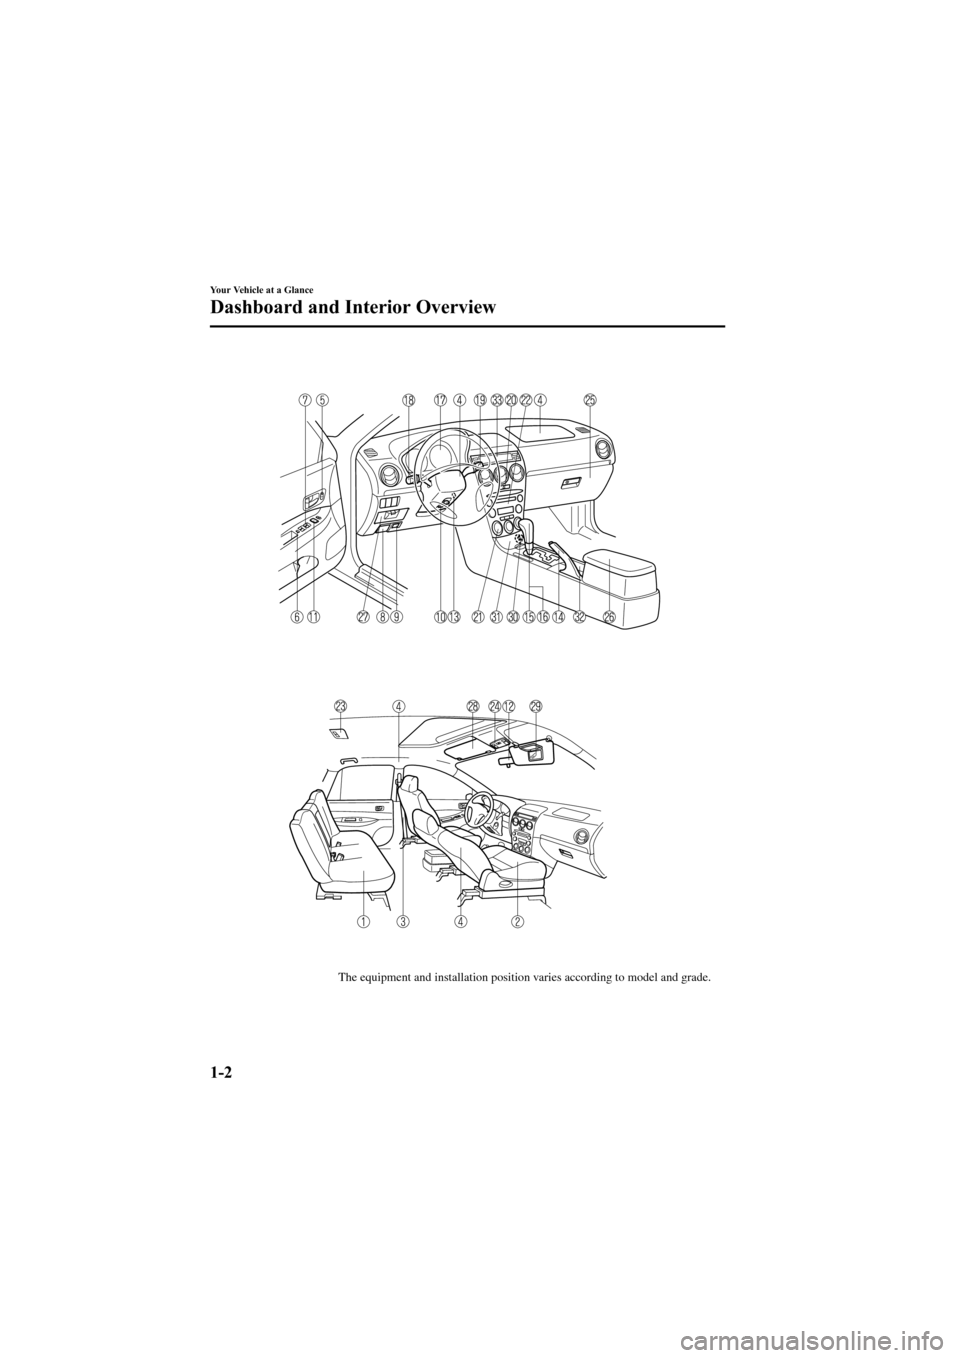 MAZDA MODEL 6 2005  Owners Manual (in English) Black plate (8,1) The equipment and installation position varies according to model and grade. 1-2 Your Vehicle at a Glance Dashboard and Interior Overview Mazda6_8T56-EC-04G_Edition2 Page8 Monday, No